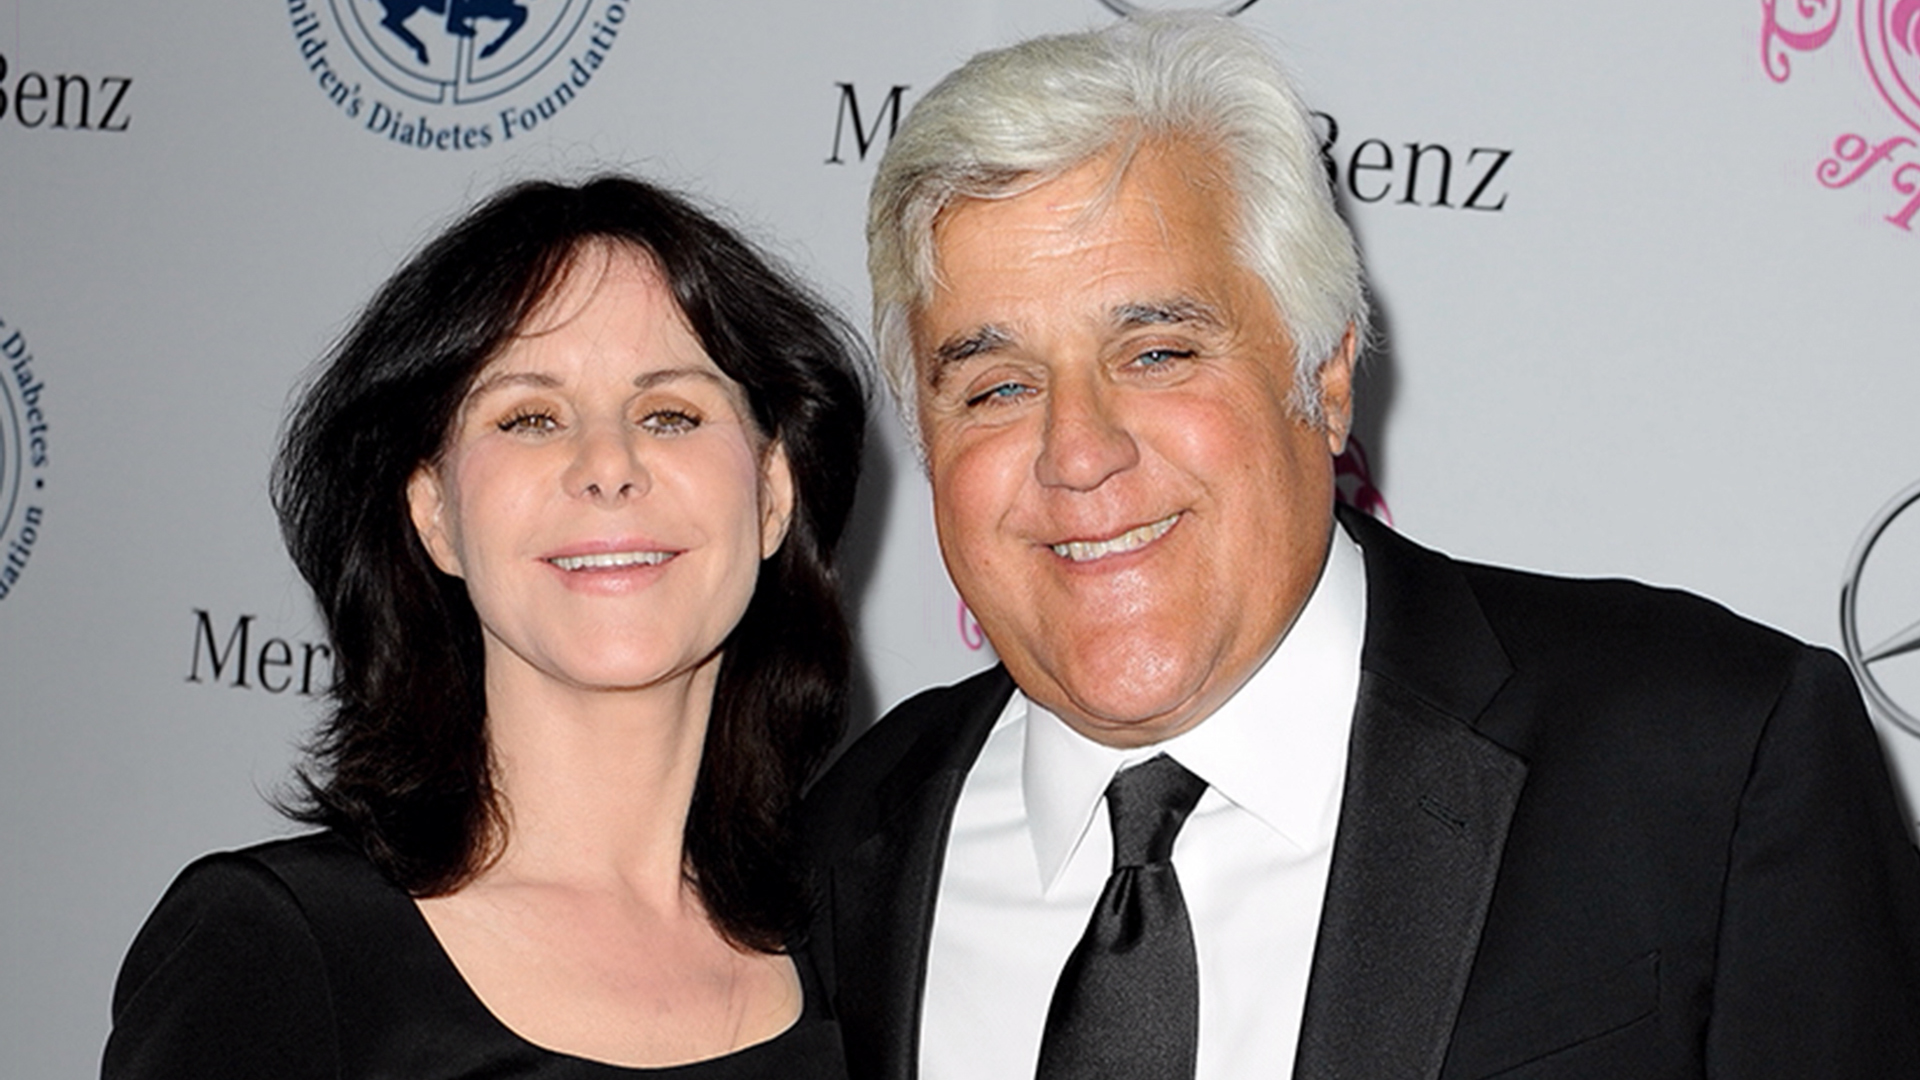 Jay Leno Family 2020, Biography, and Net Worth Updates